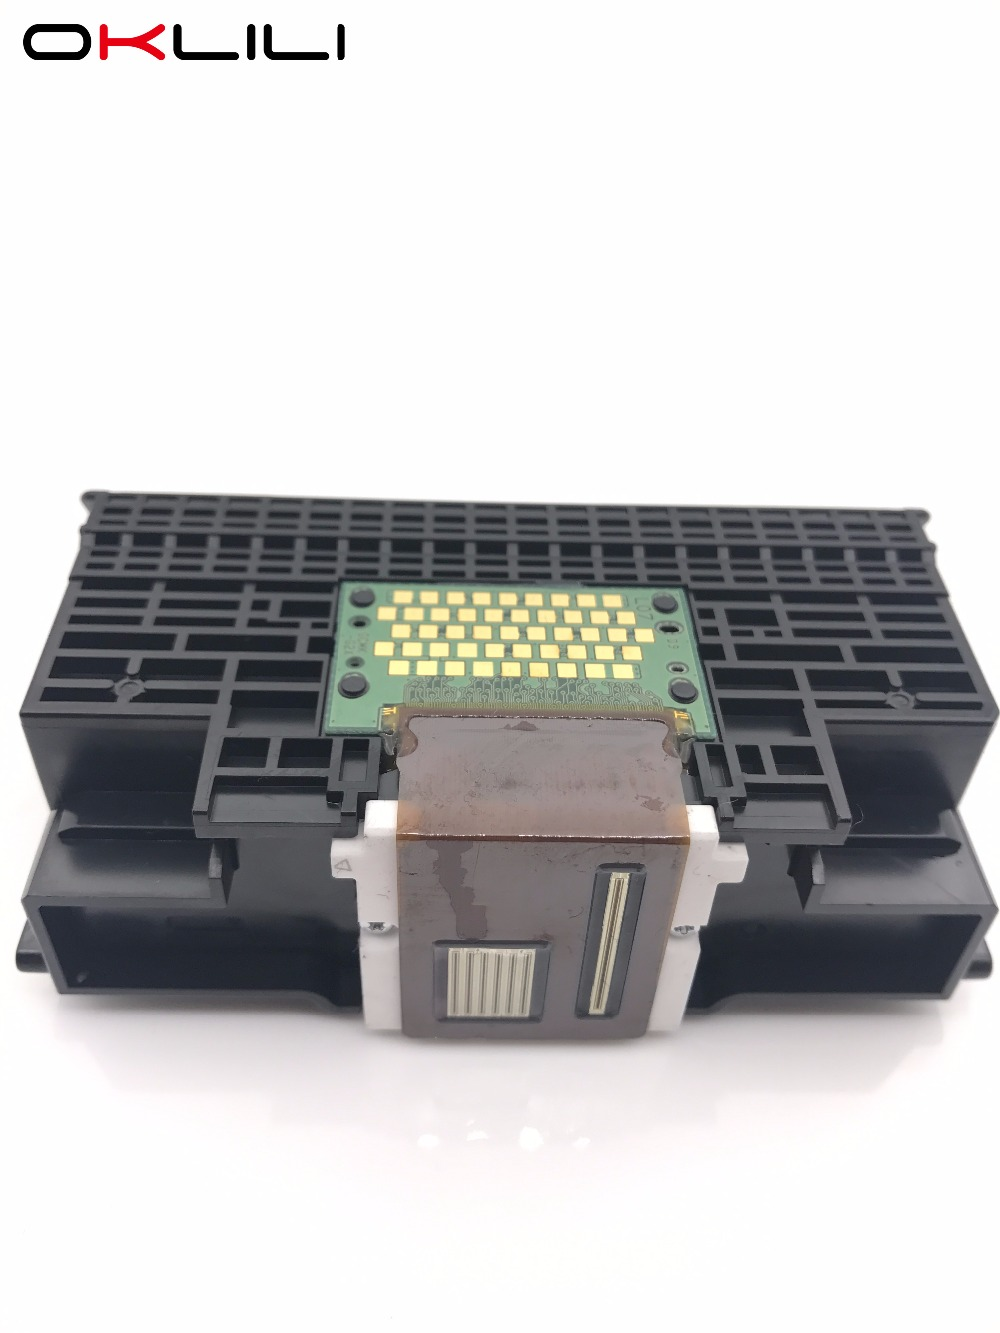 OKLILI ORIGINAL QY6-0062 QY6-0062-000 Printhead Print Head Printer Head for Canon iP7500 iP7600 MP950 MP960 MP970 qy6 0069 qy6 0069 qy60069 qy6 0069 000 printhead print head printer head remanufactured for canon mini260 mini320